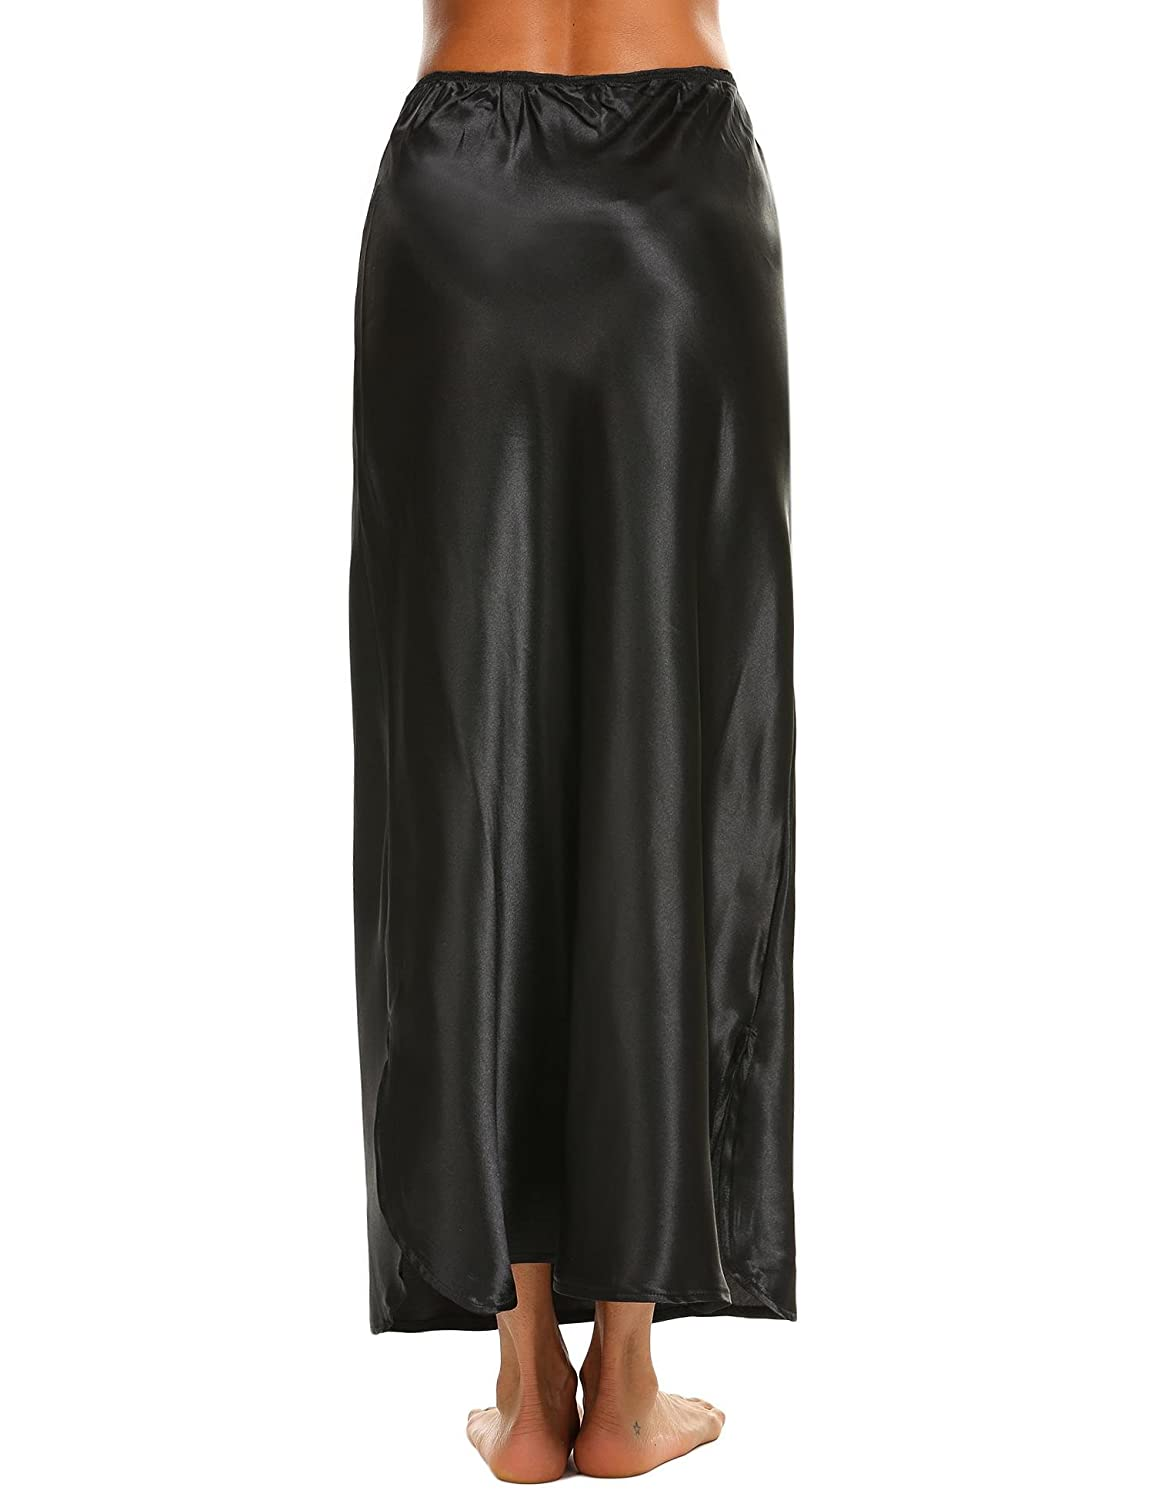 6982b656 Black Aimado Women Casual Half Slip Sides Seam Open Solid Calf Length  Skirt(S,